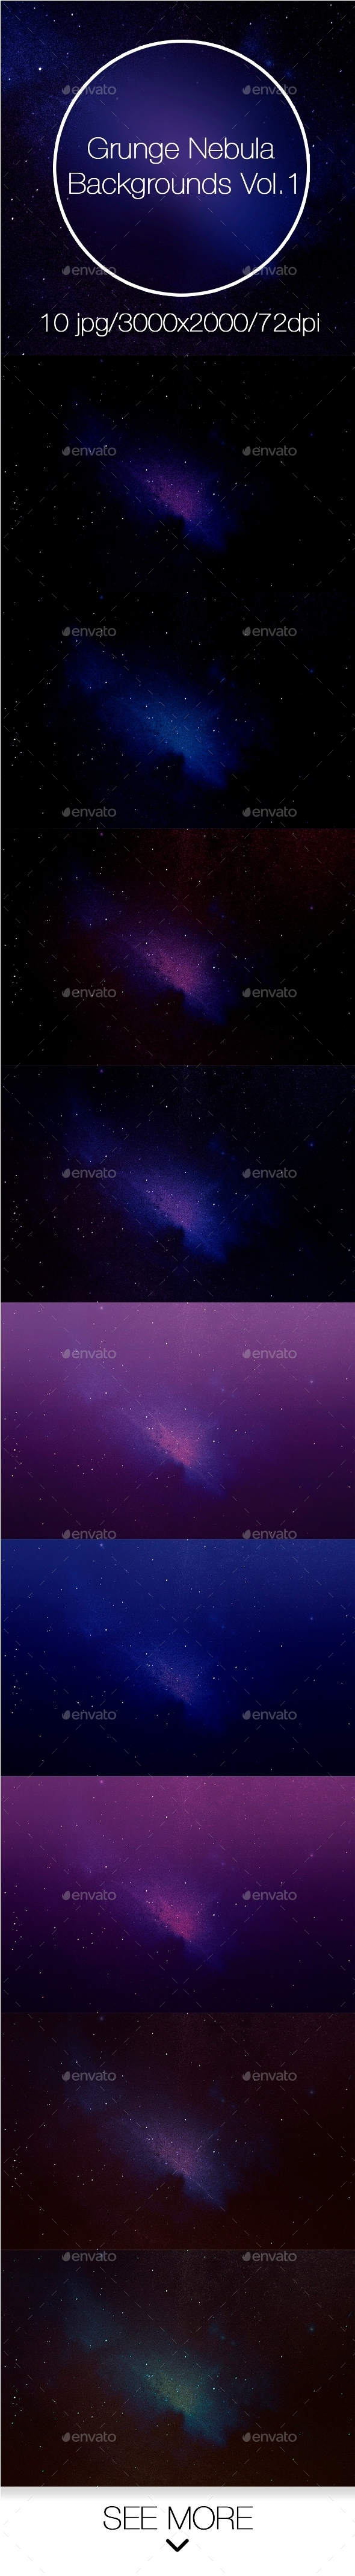 Grunge Nebula Backgrounds Vol.1 - Abstract Backgrounds